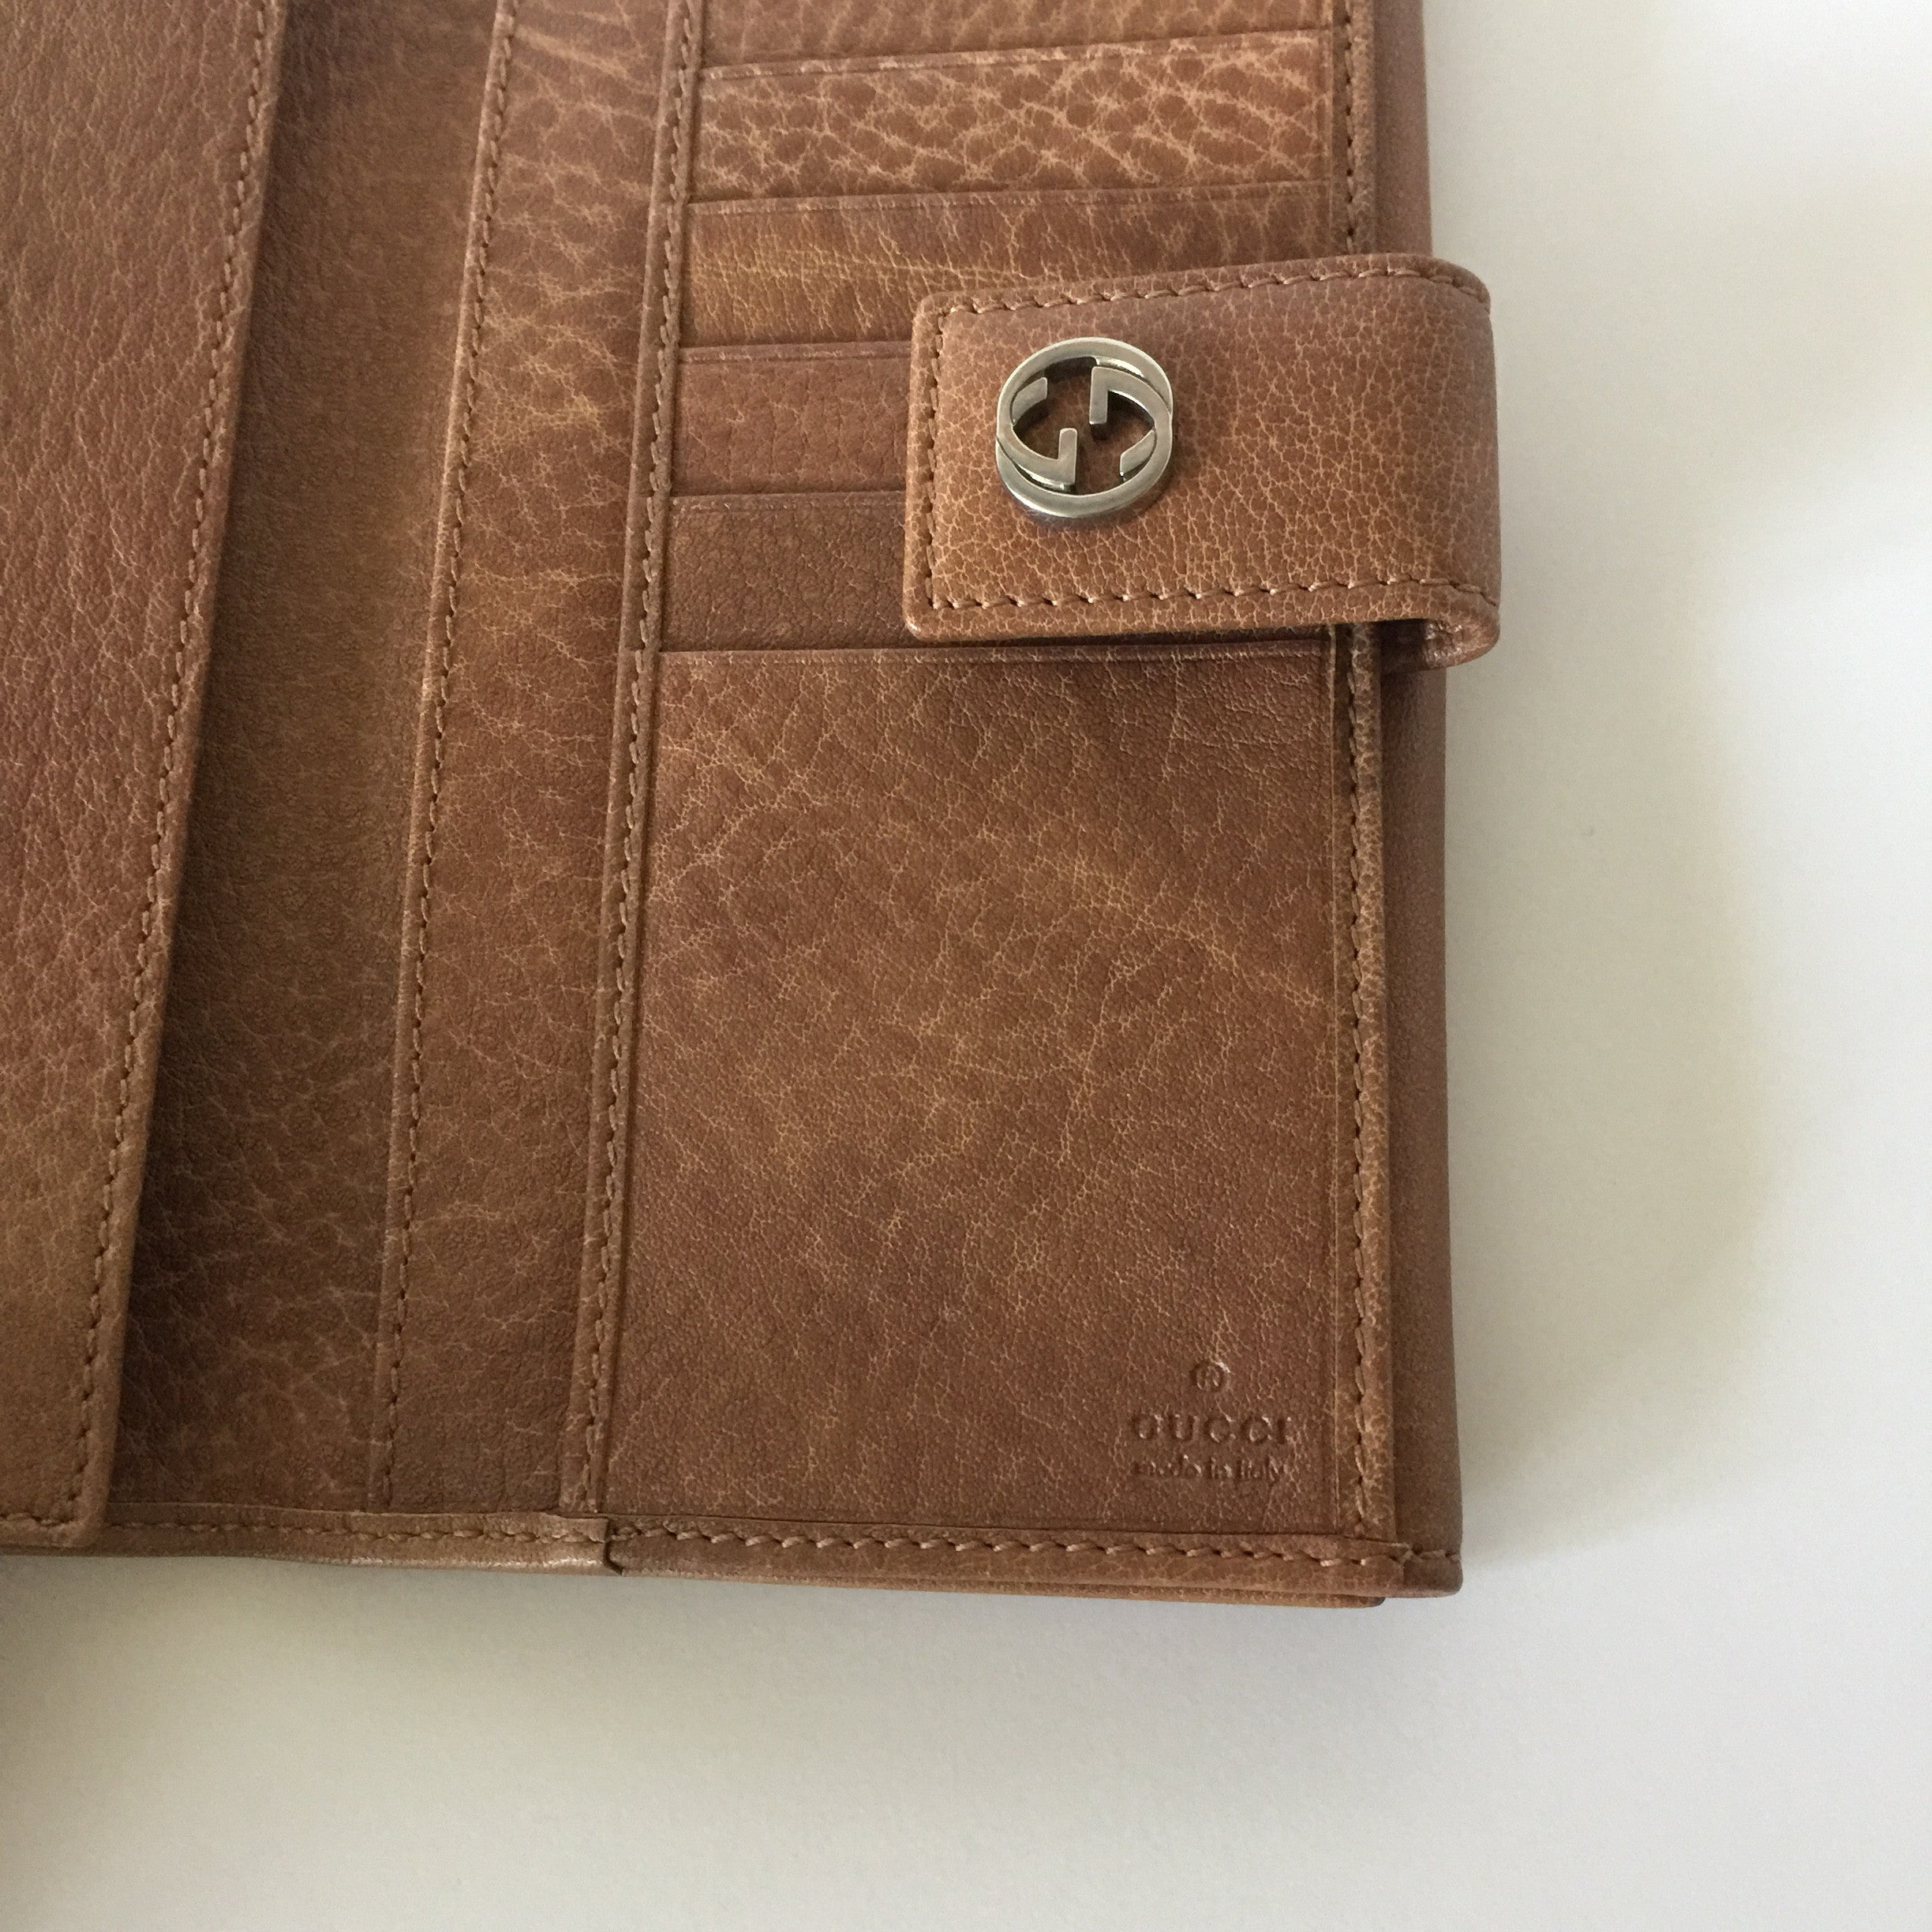 Authentic GUCCI Libeccio Wallet